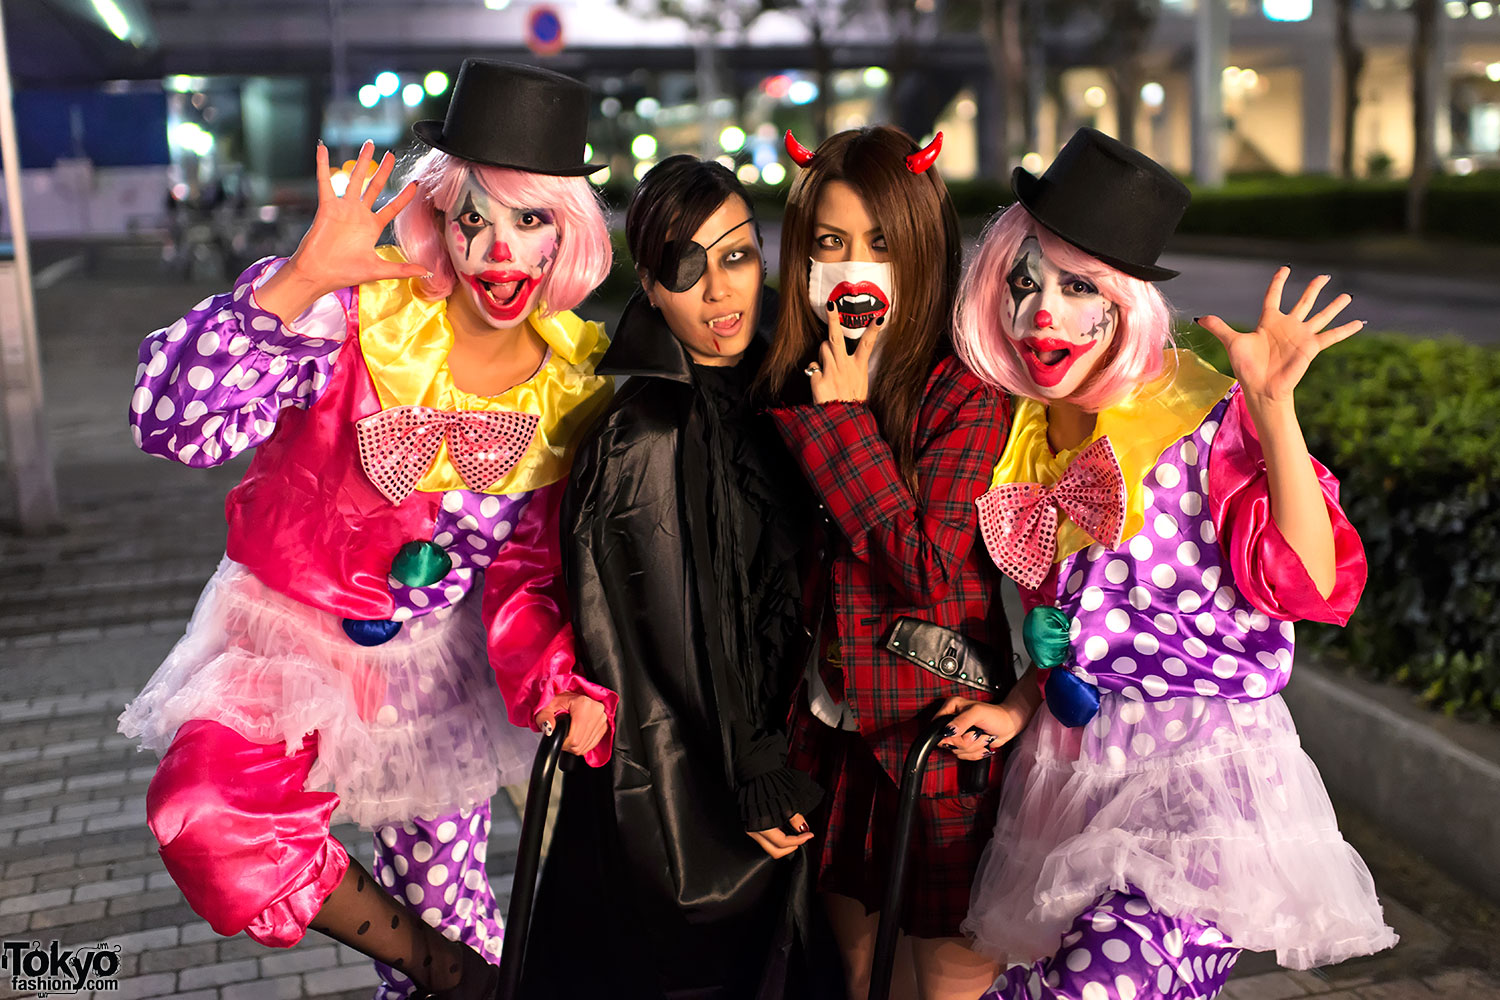 VAMPS Halloween Party in Tokyo - Fan Fashion & Costume Snaps